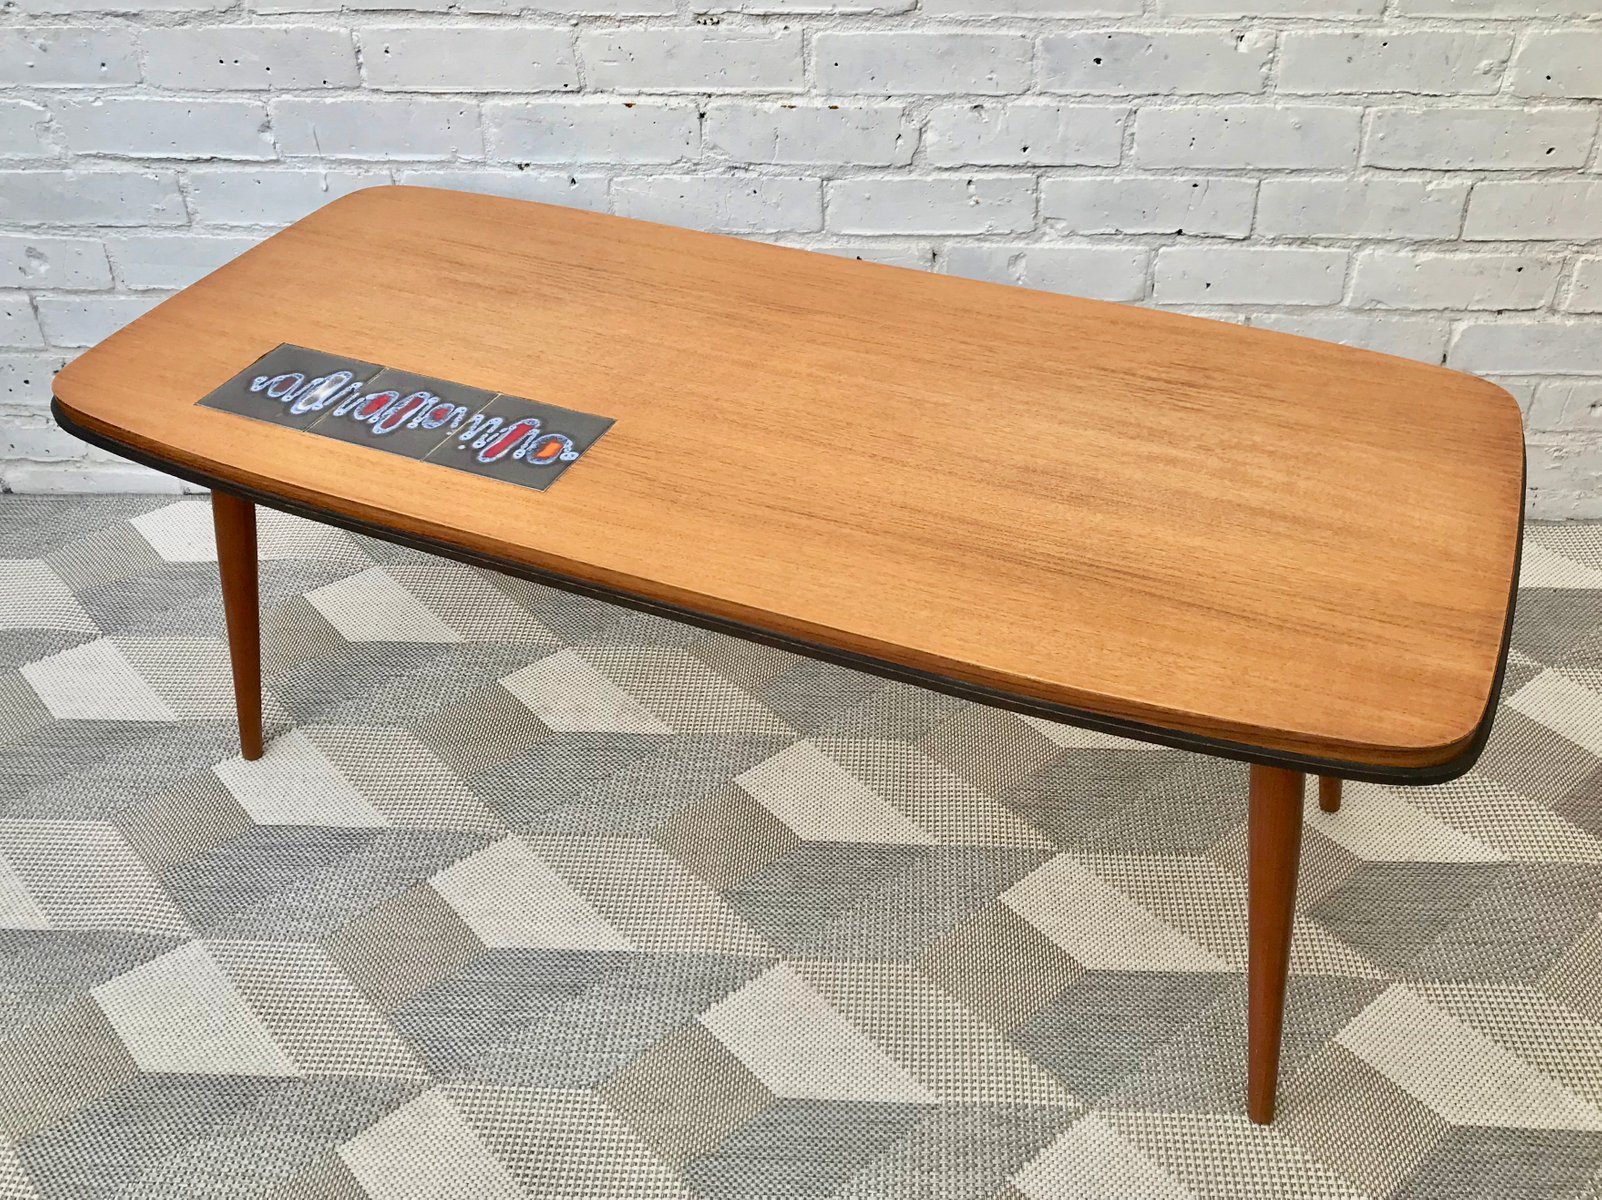 Vintage Coffee Table with Tiles for sale at Pamono